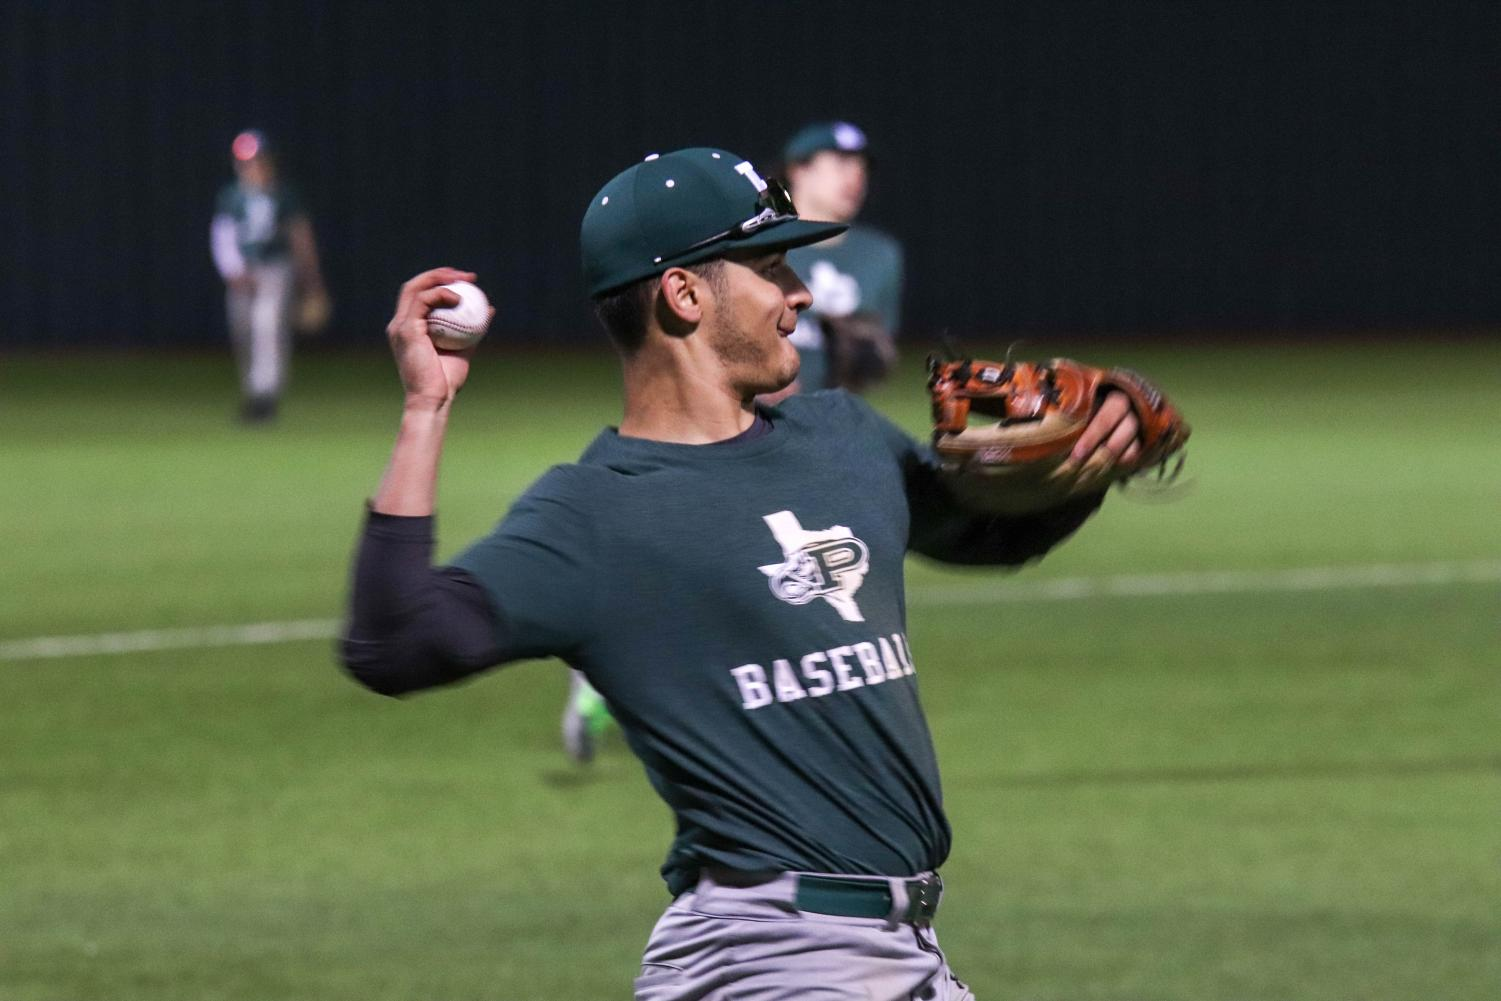 Baseball catches win over South Lake Carroll